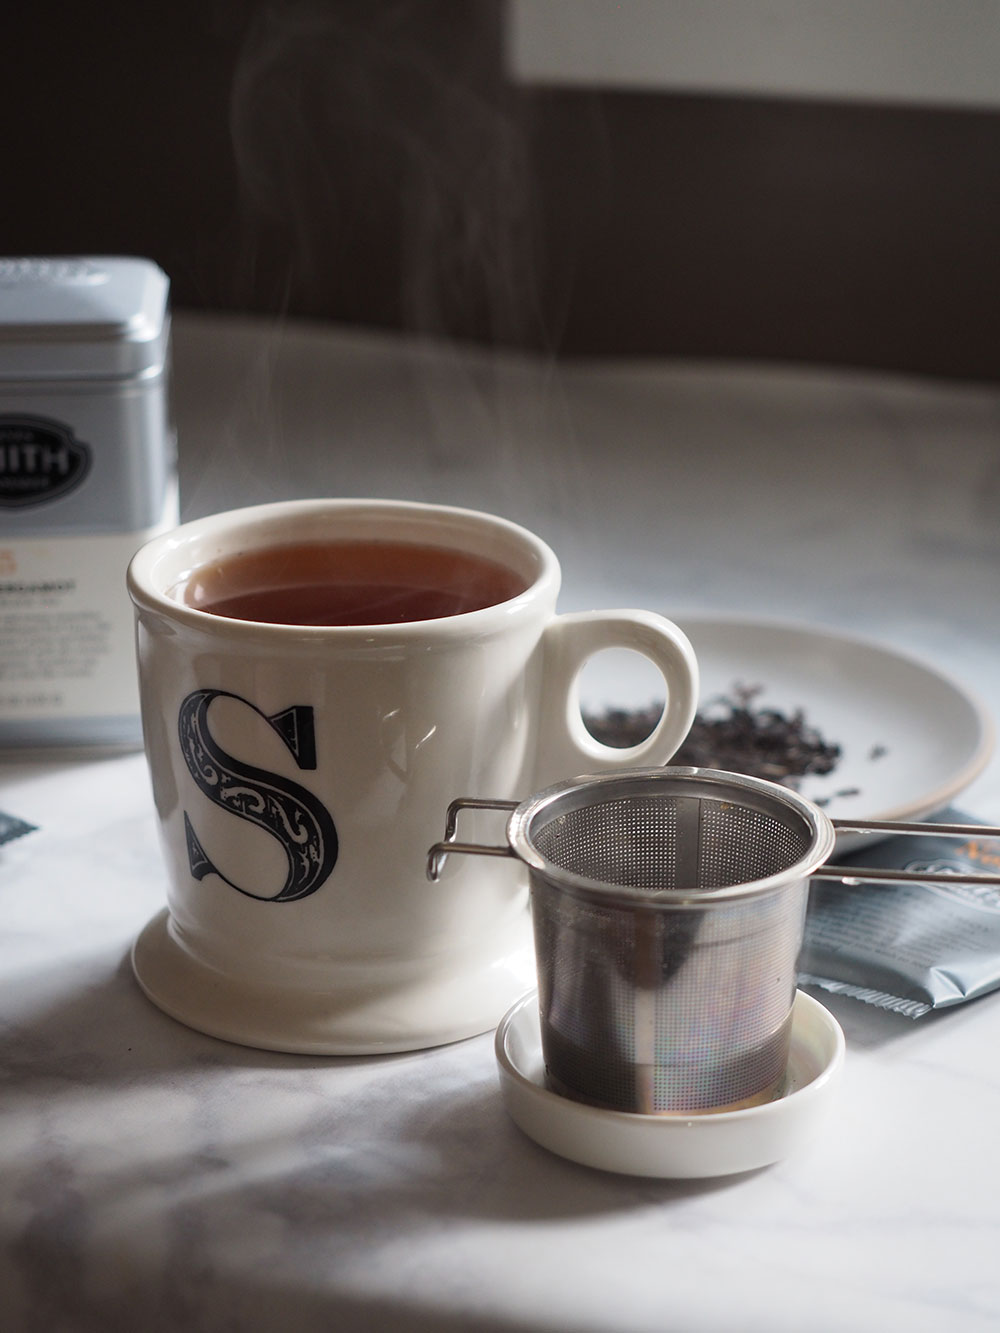 Learn why buying loose leaf tea gives you better a taste and value than tea bags. Part 1 of my Beginner's Guide to tea for tea newbies.